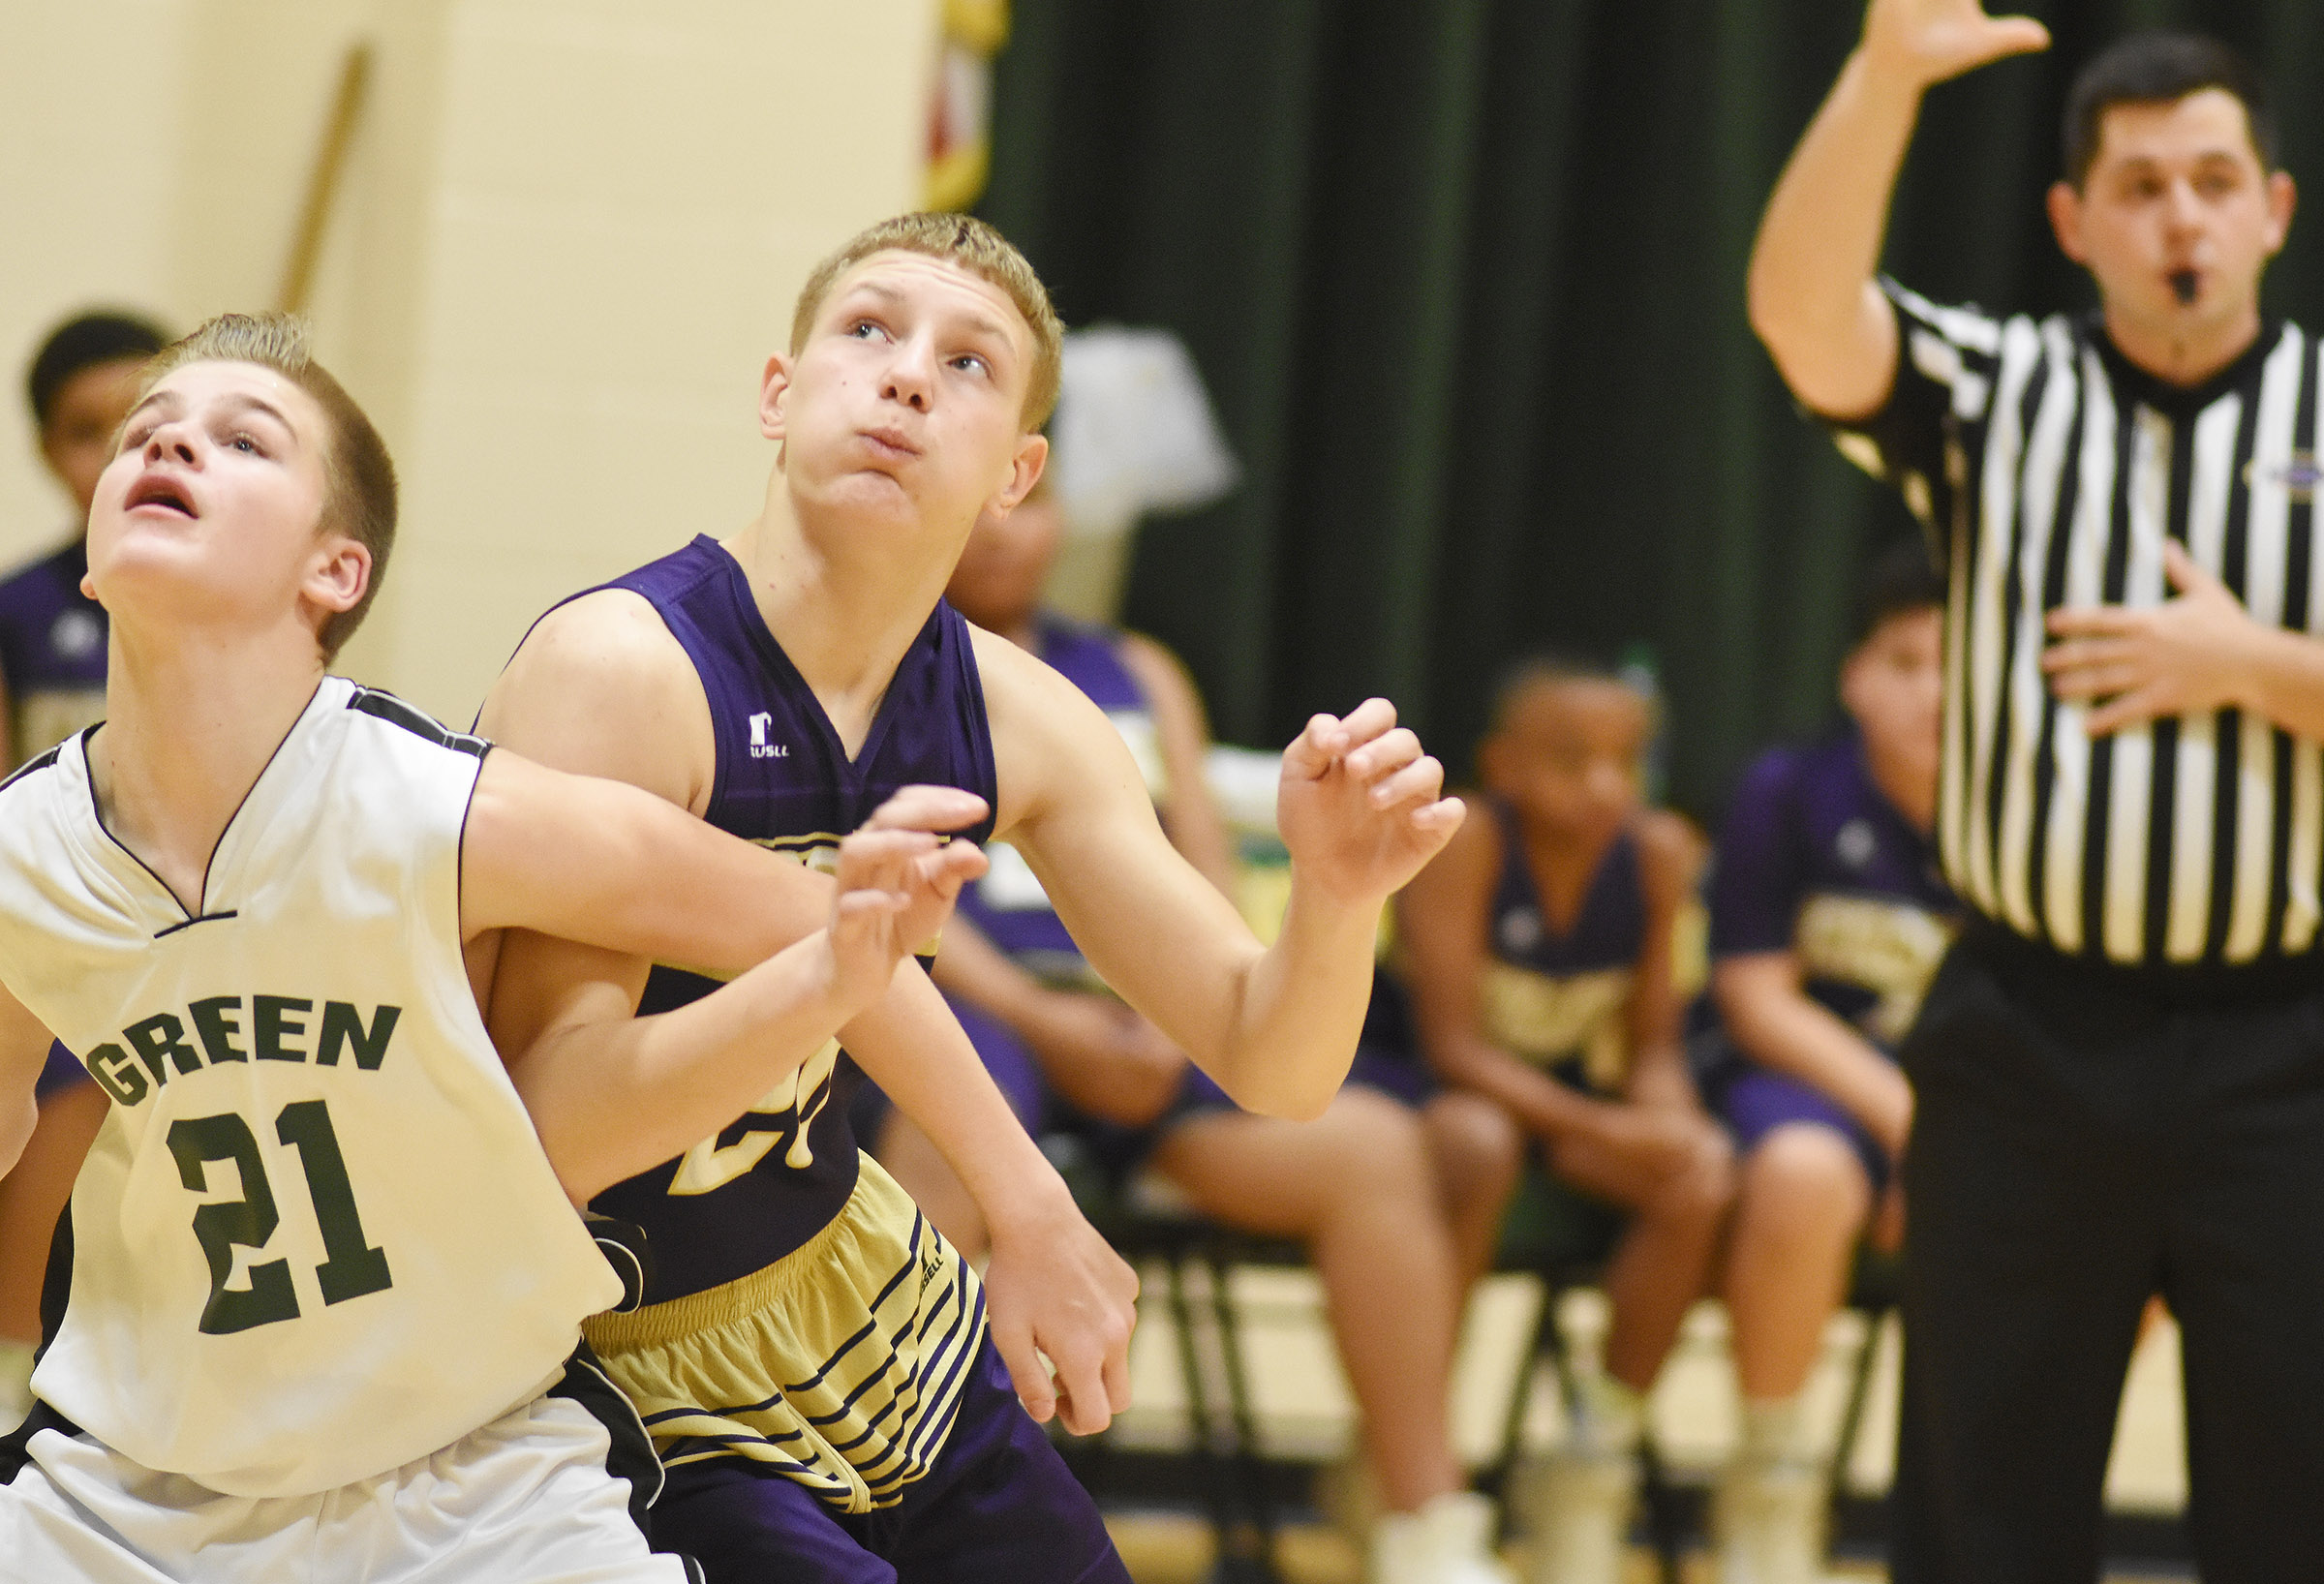 CMS seventh-grader Damon Johnson fights for the ball.